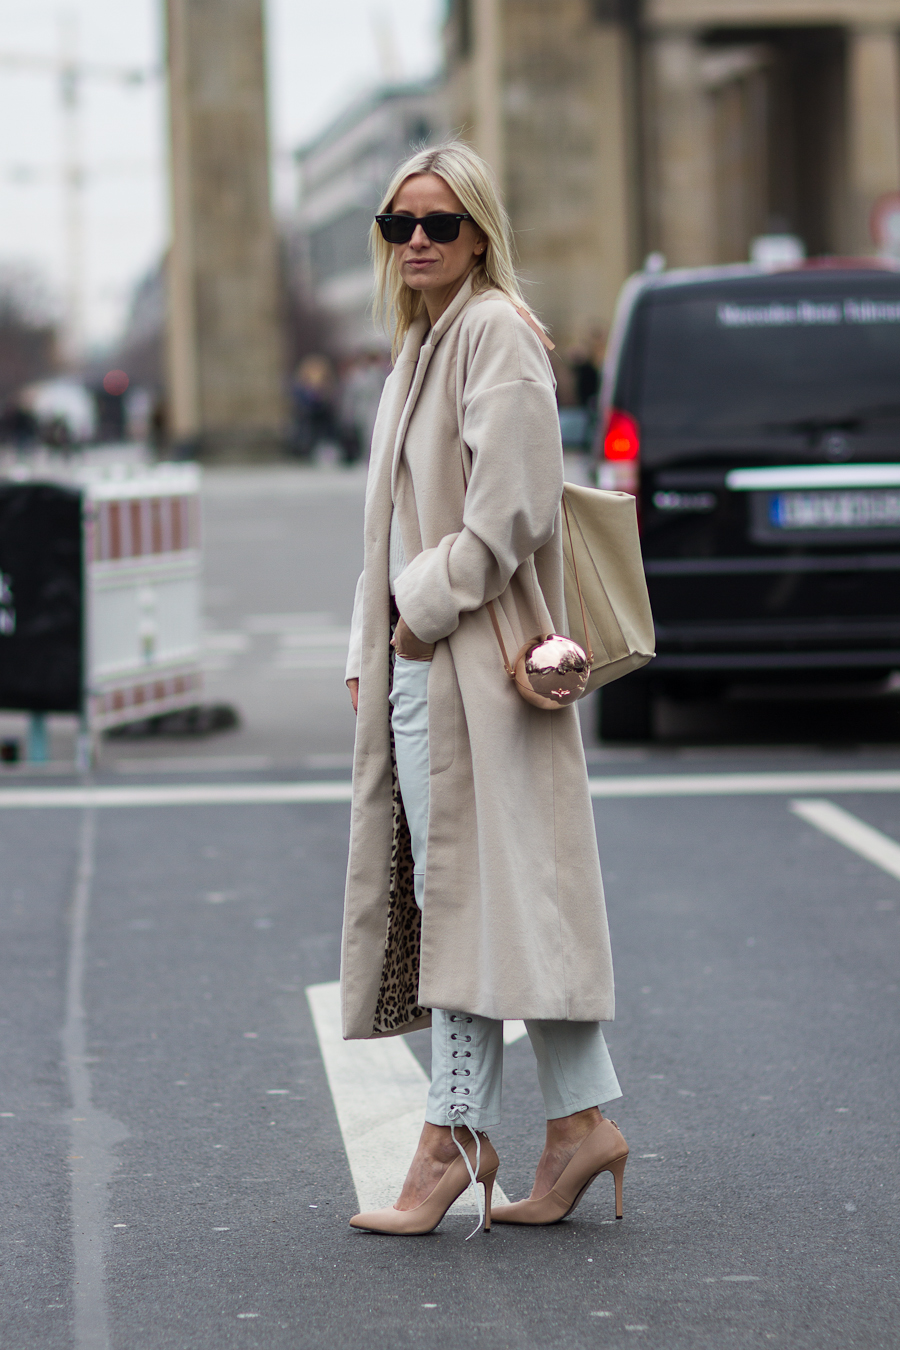 street-style-fashion-blog-innsbruck-berlin-fashion-week-celine-aaagaard